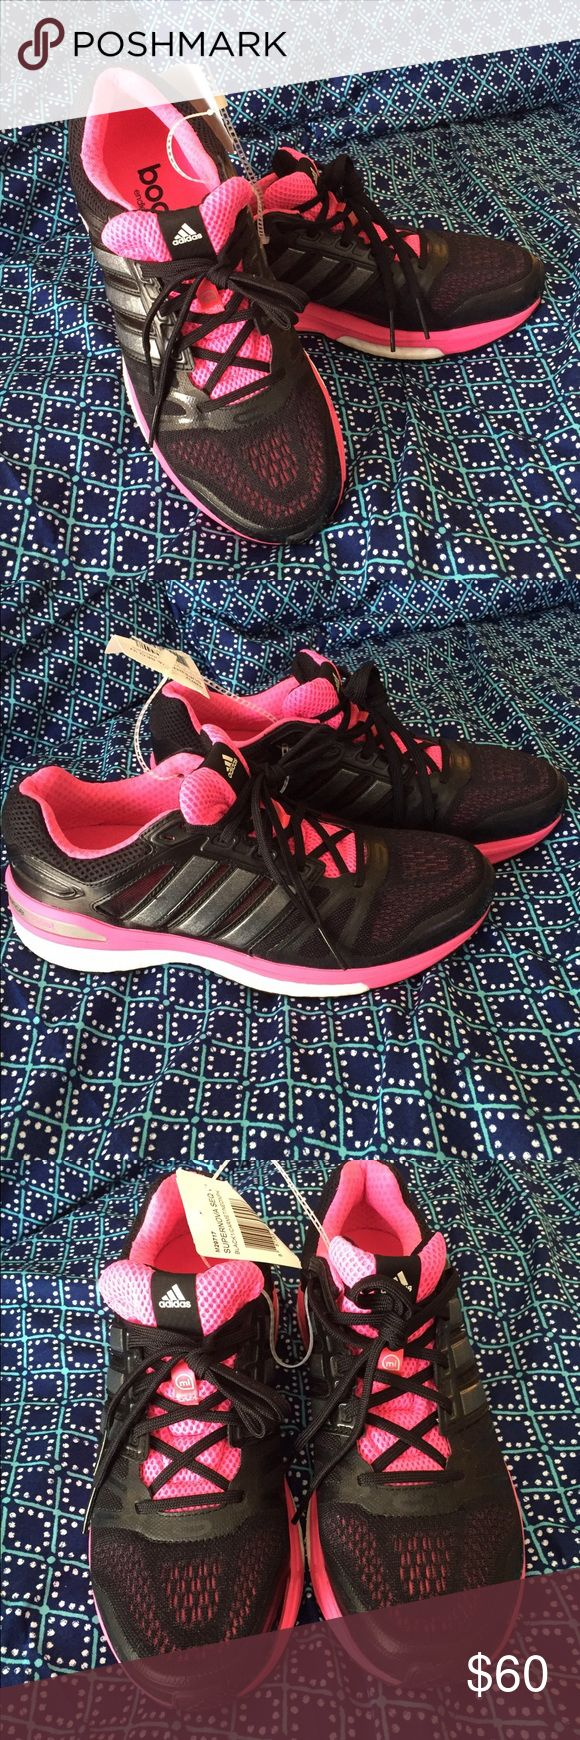 Adidas Supernova Sequence Boost Black and Pink Adidas Supernova.                    The Adidas Supernova Sequence retains signature cushioning and stability overpronators have come to expect that is now enhanced with signature Boost technology. A stretch fit seamless upper hugs the foot for a comfortable yet breathable fit while dual density in the midsole provides stability for those who need it. Boost has proven to be more durable lightweight and had more bounce and resiliency than…